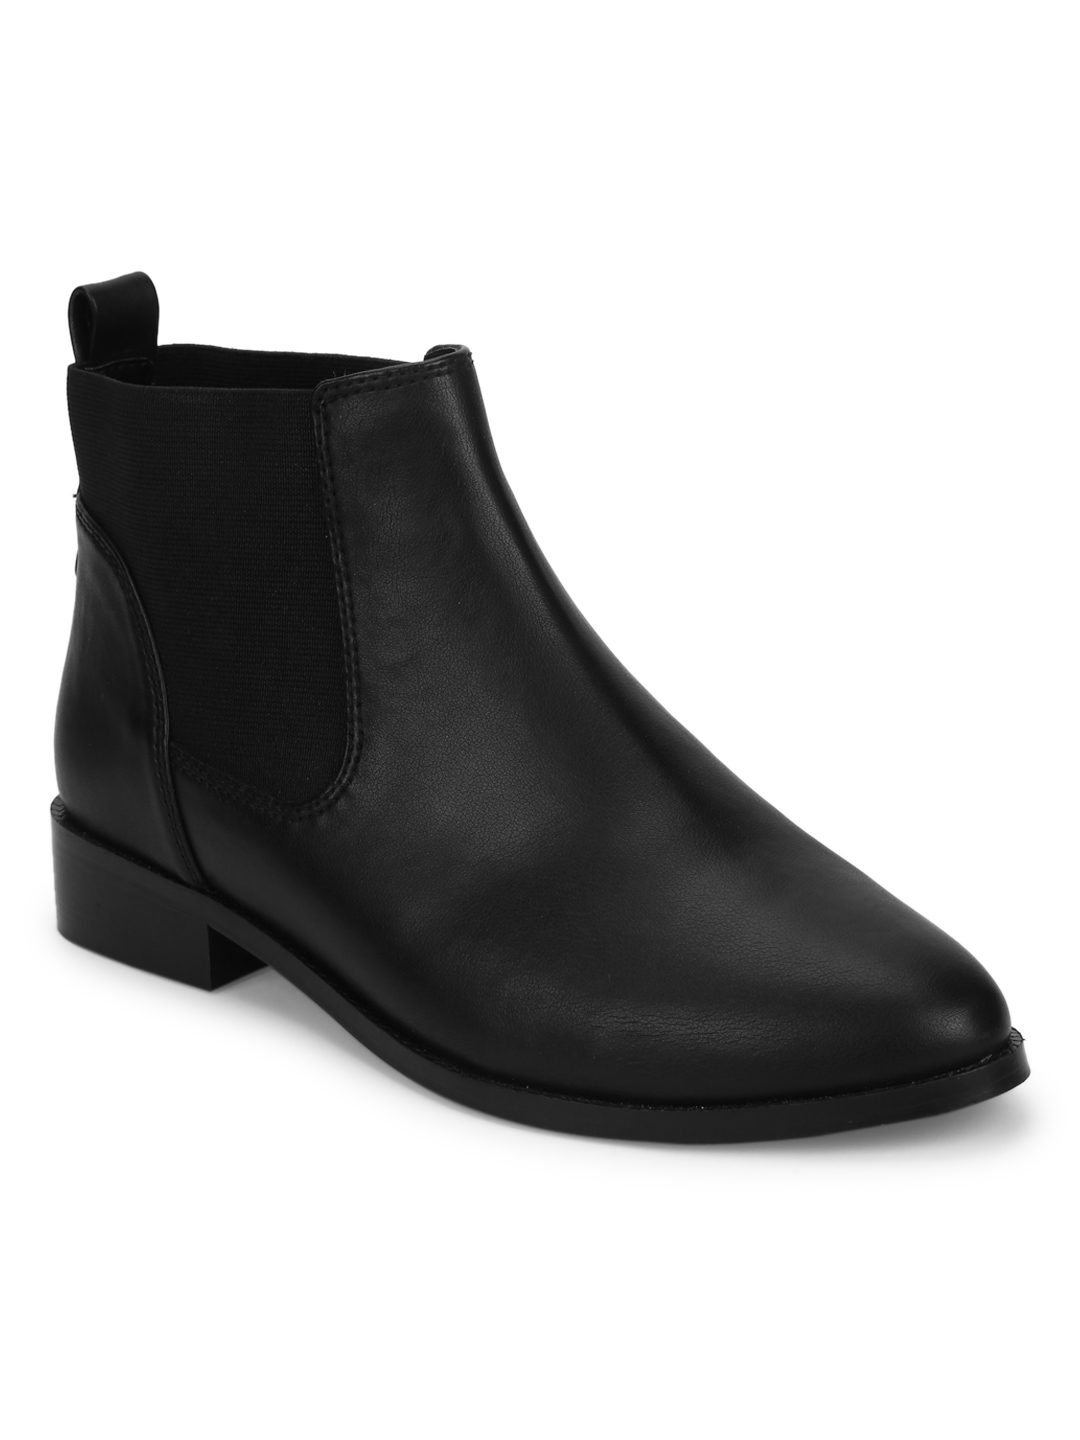 Truffle Collection | Truffle Collection Black PU Chelsea Ankle Boots